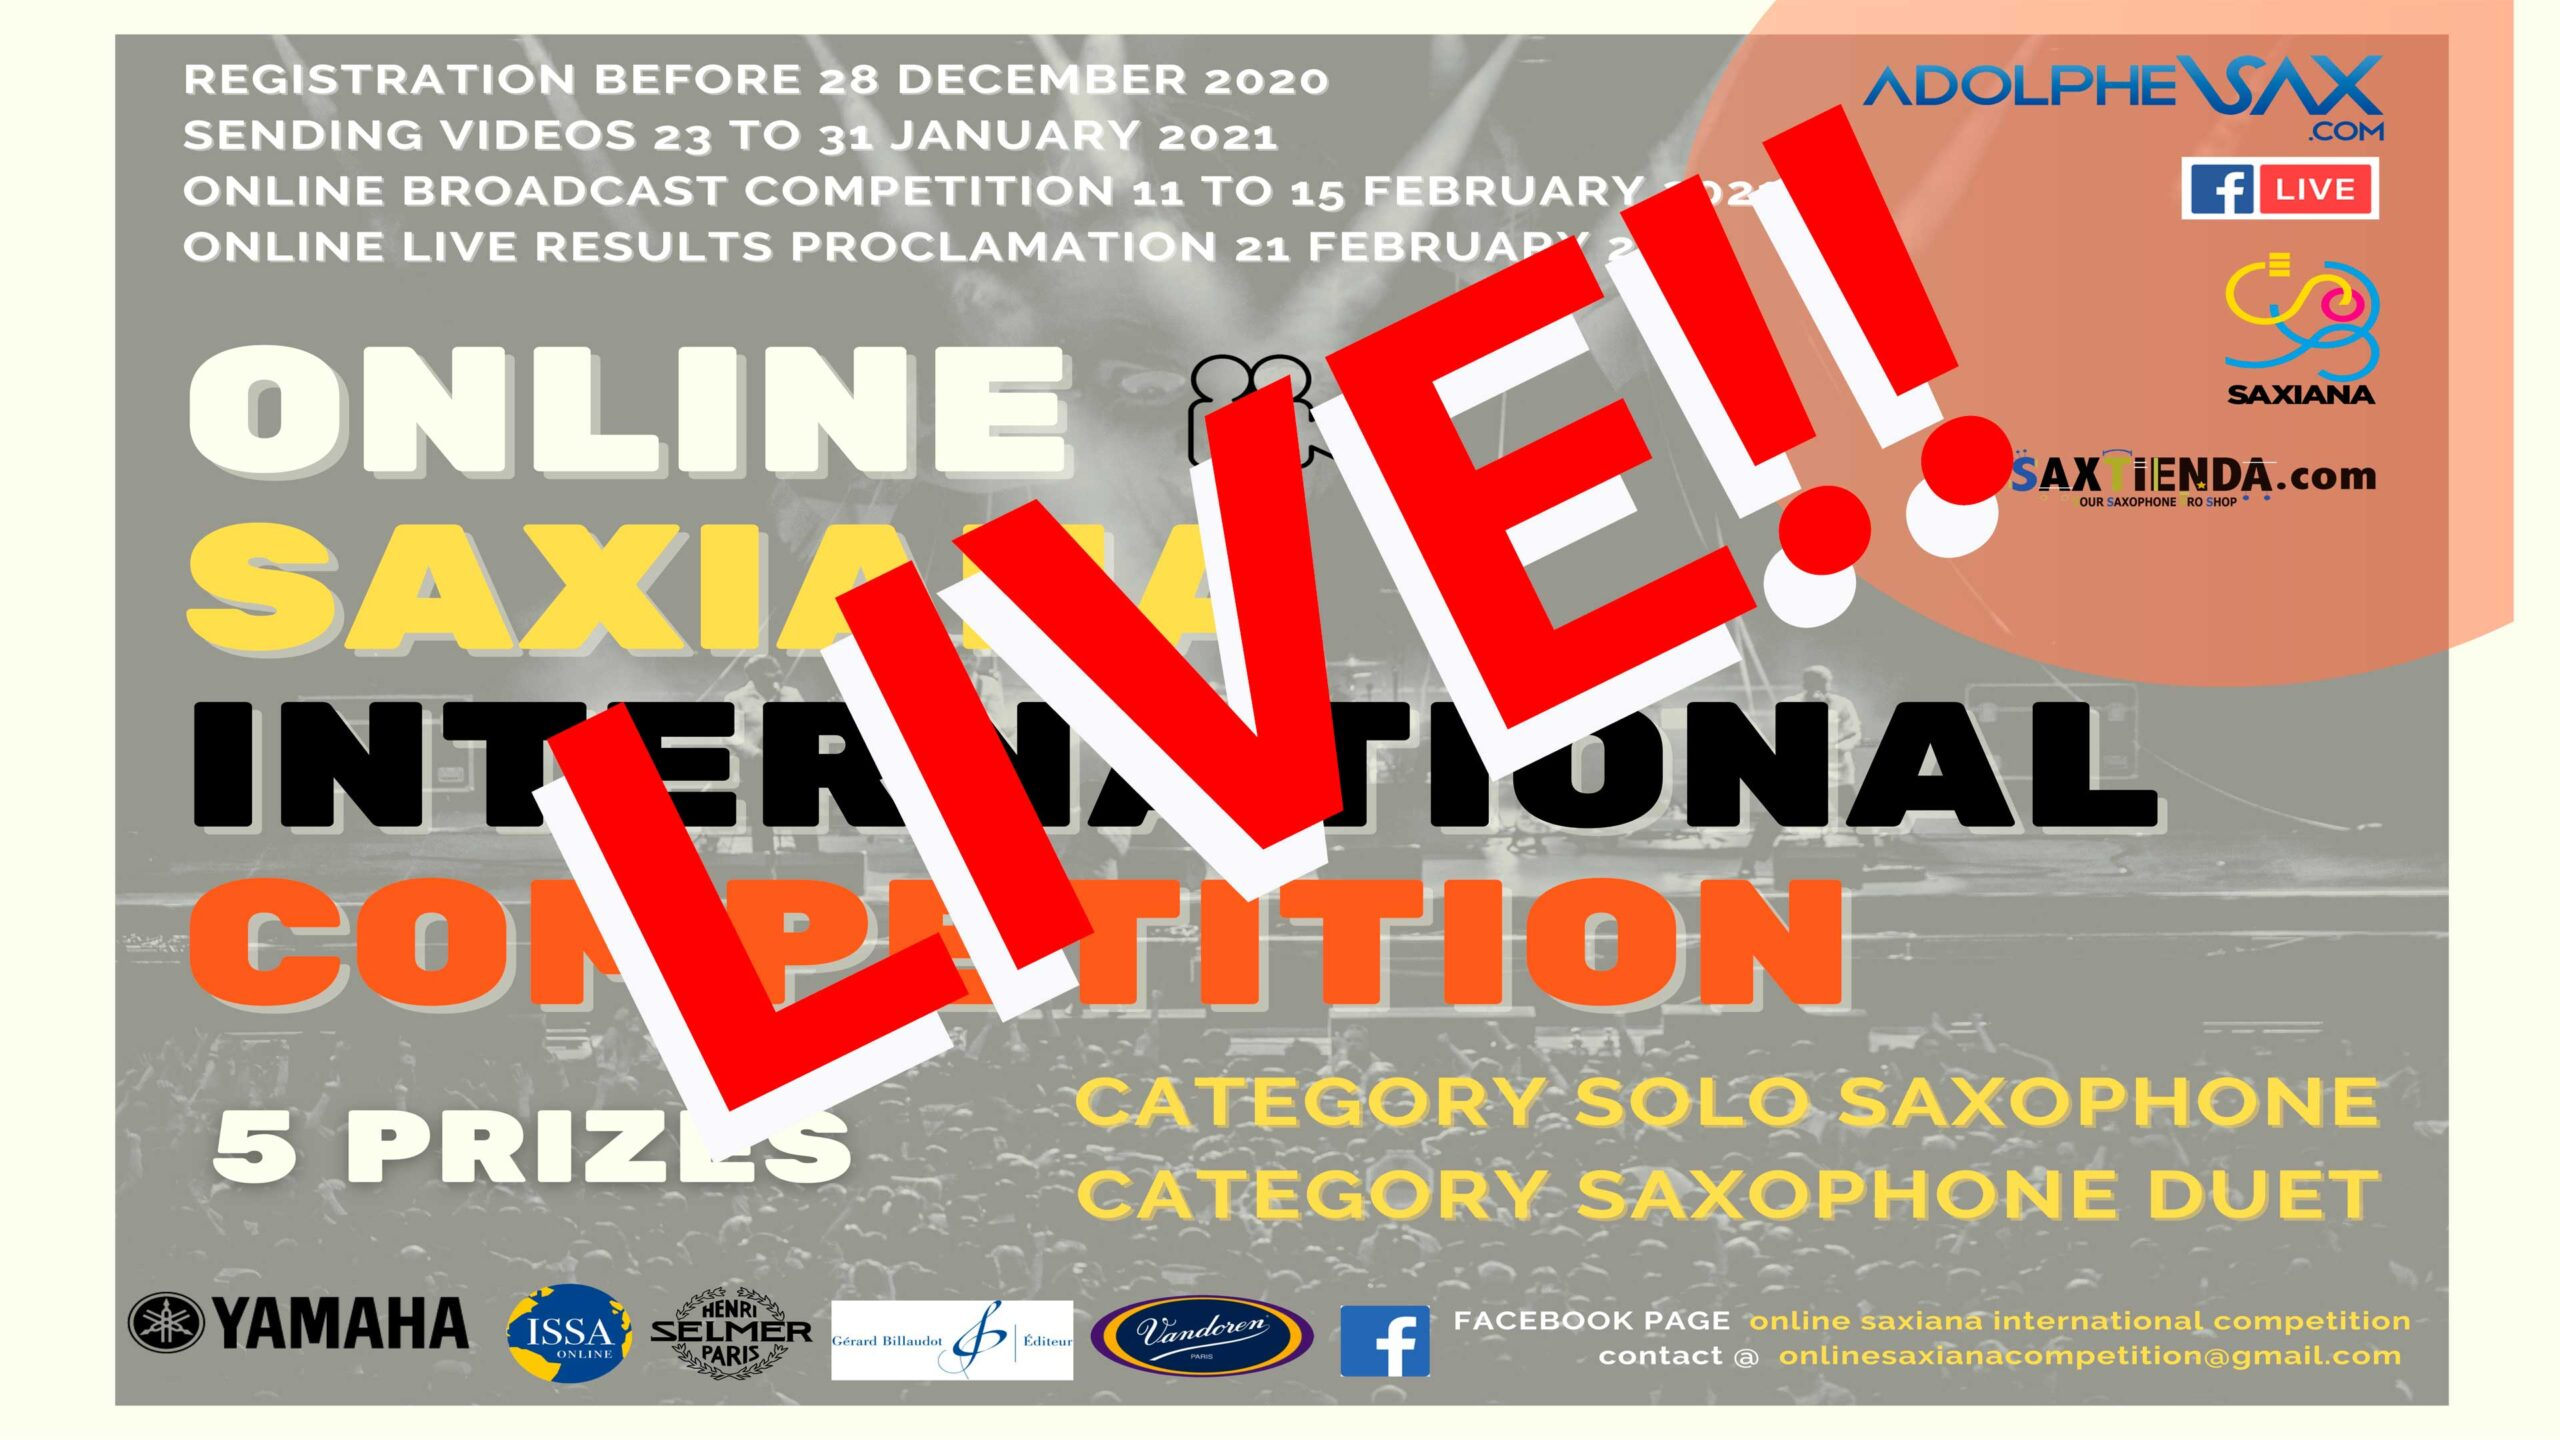 LIVE NOW: SAXIANA-ADOLPHESAX ONLINE SOLO COMPETITION